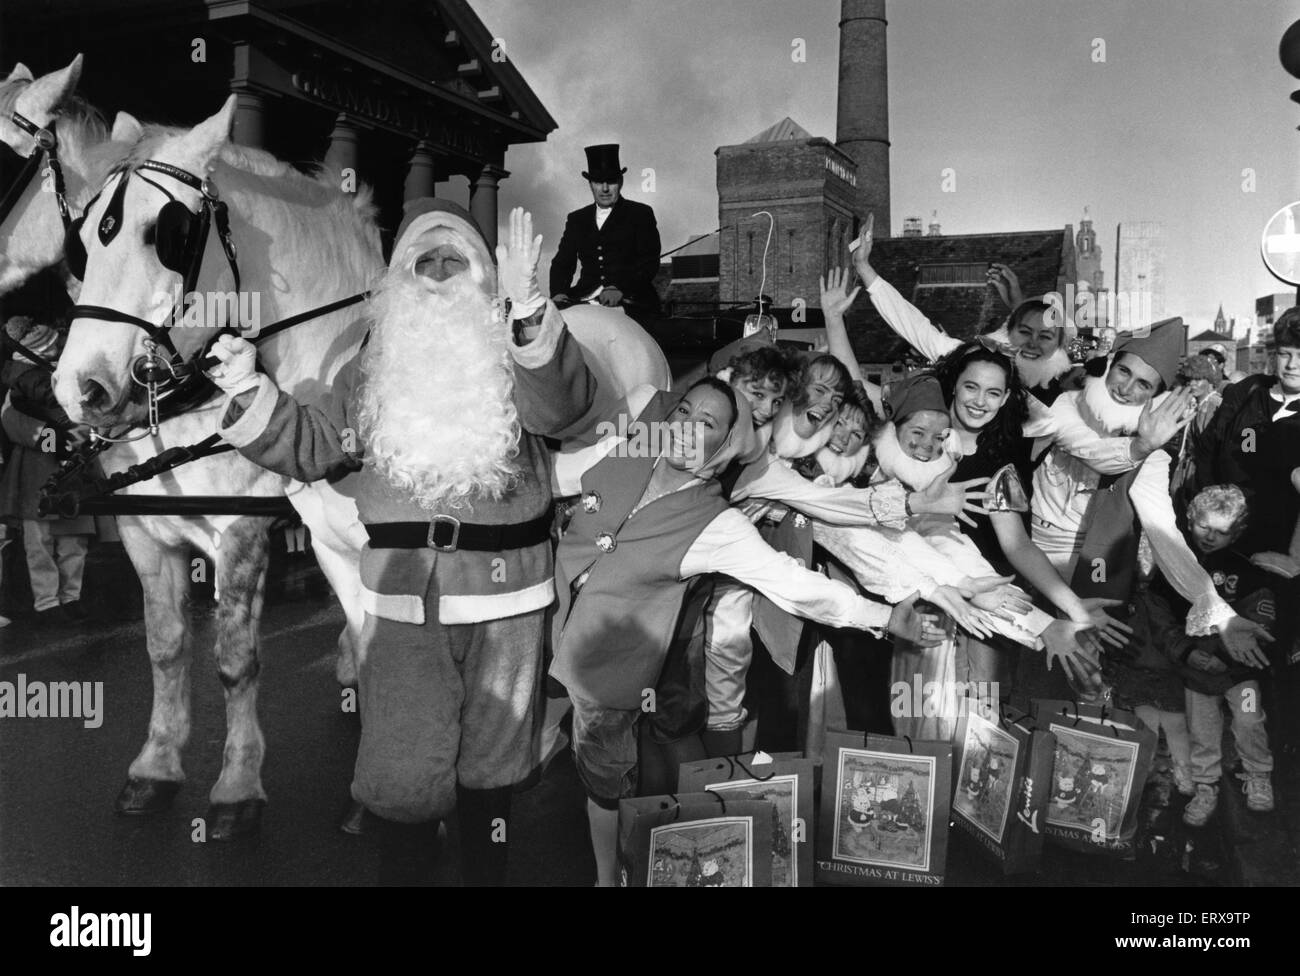 Father Christmas accompanied by Snow White and the seven dwarfs, a pantomime horse, Aladdin, and other colourful - Stock Image